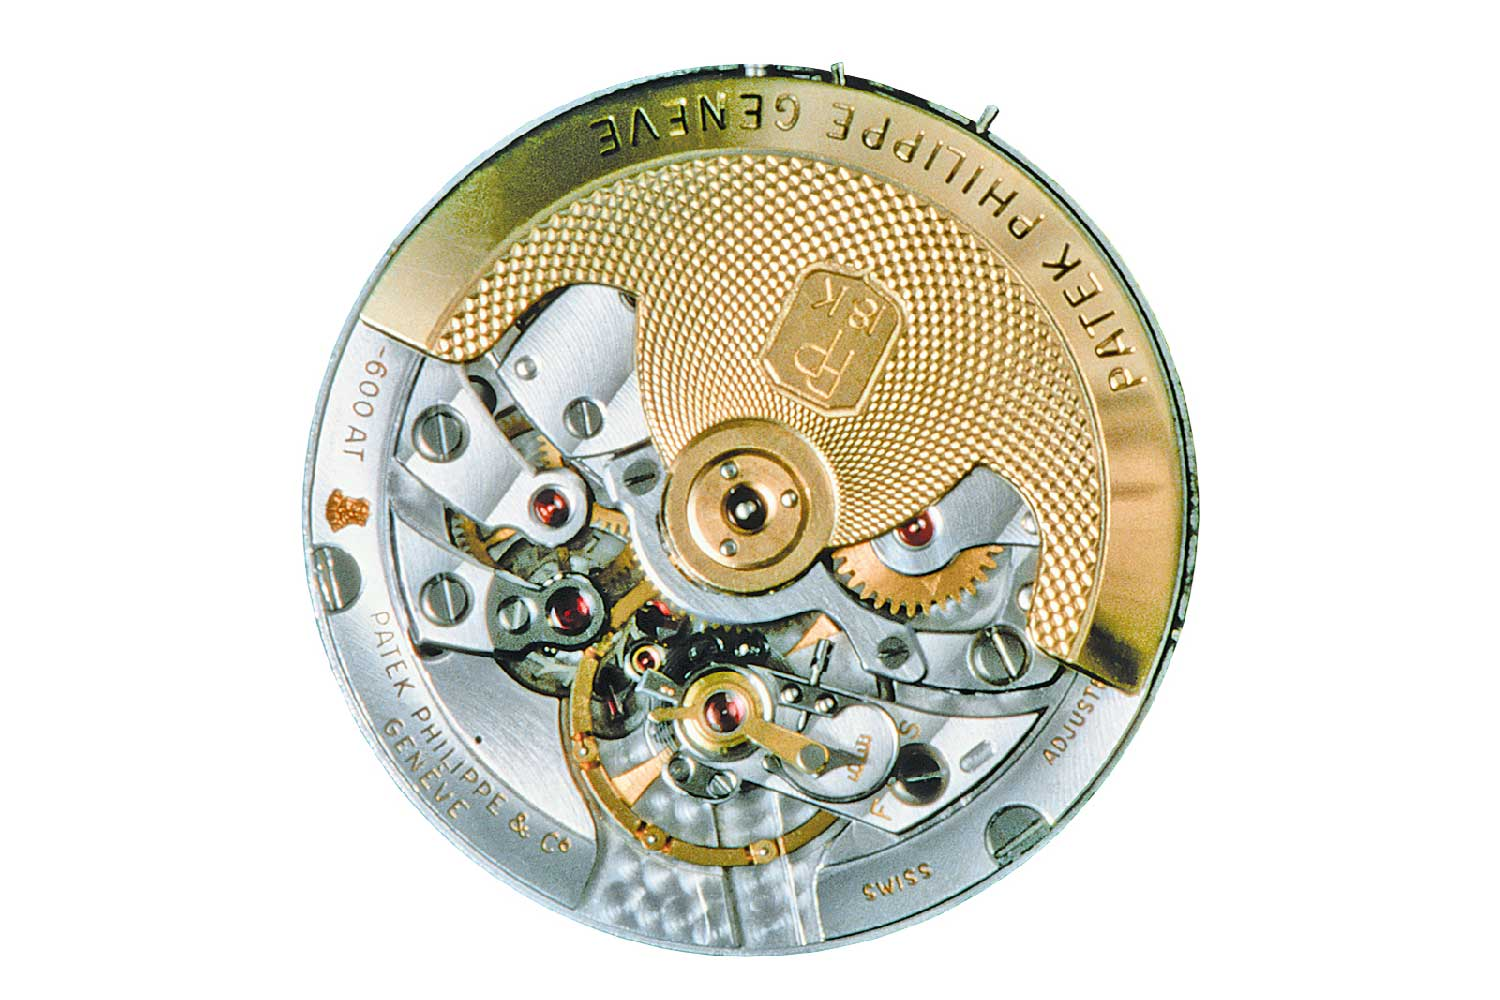 The elaborately constructed calibre 12-600 AT